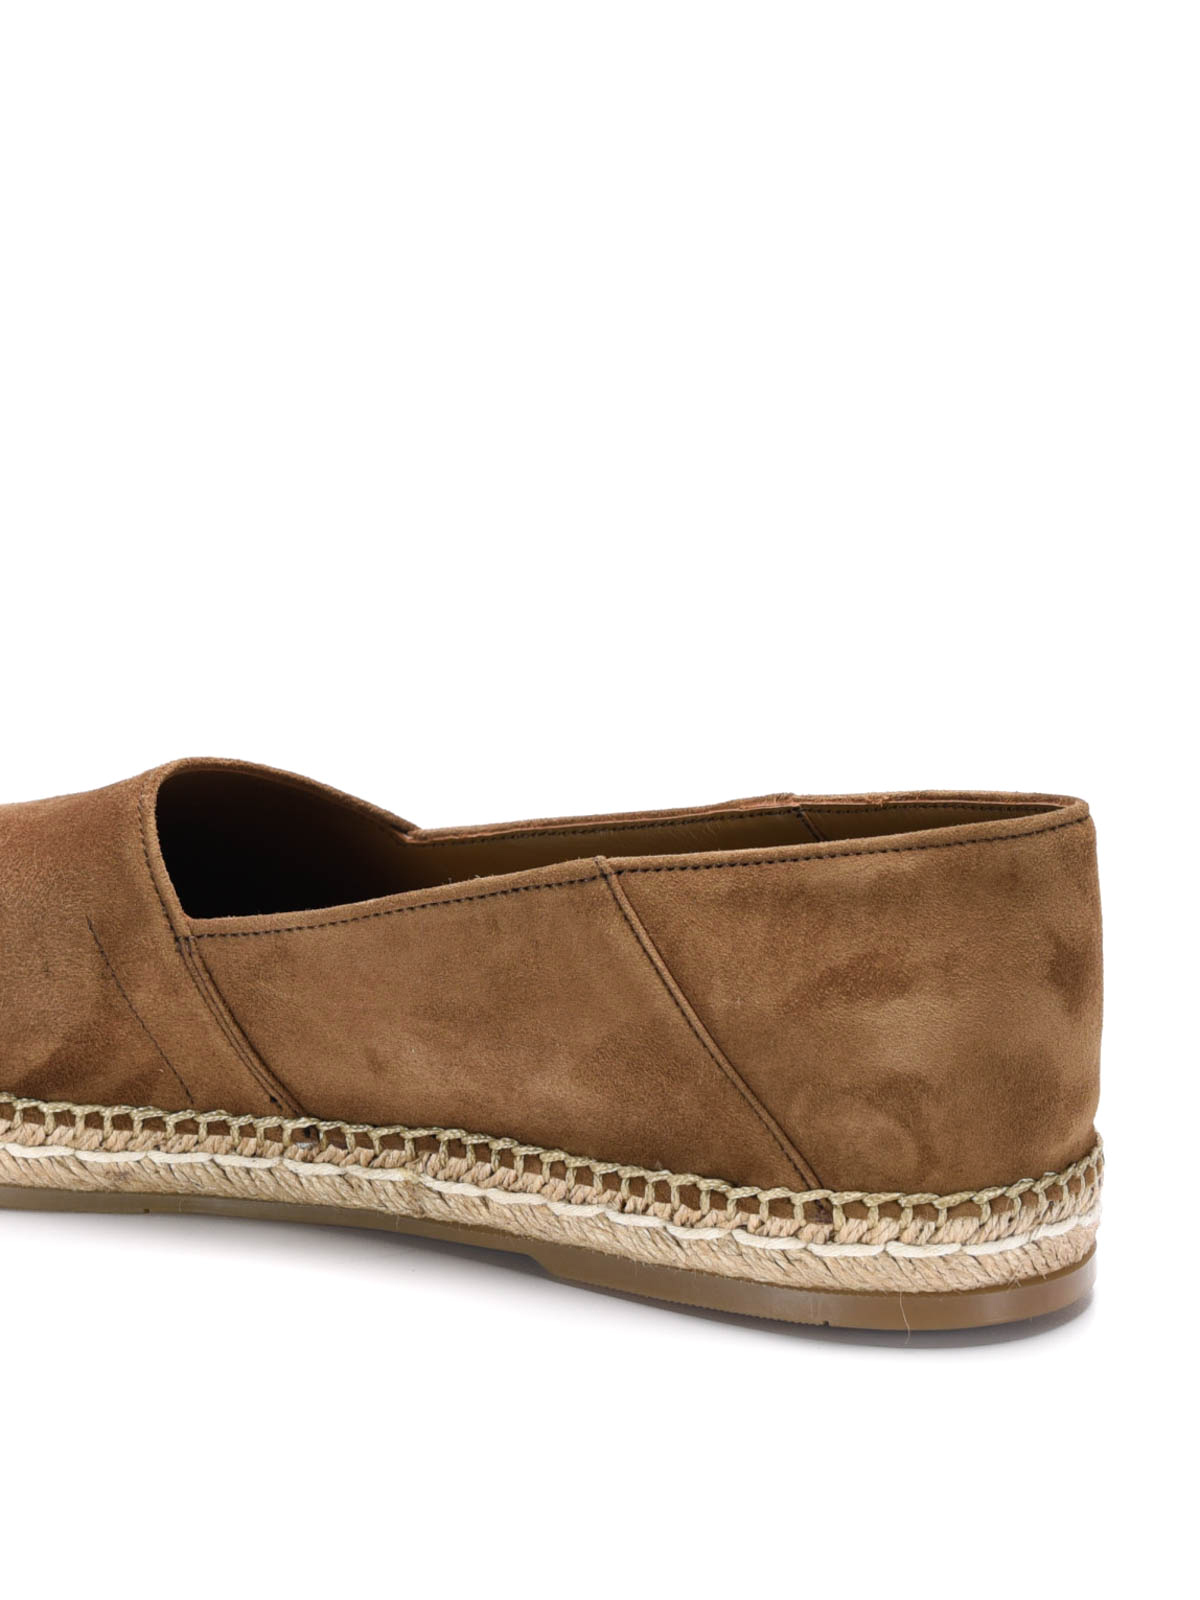 search for official classic shoes favorable price Prada - Suede espadrilles - espadrilles - 2DE092 CAMMELLO ...